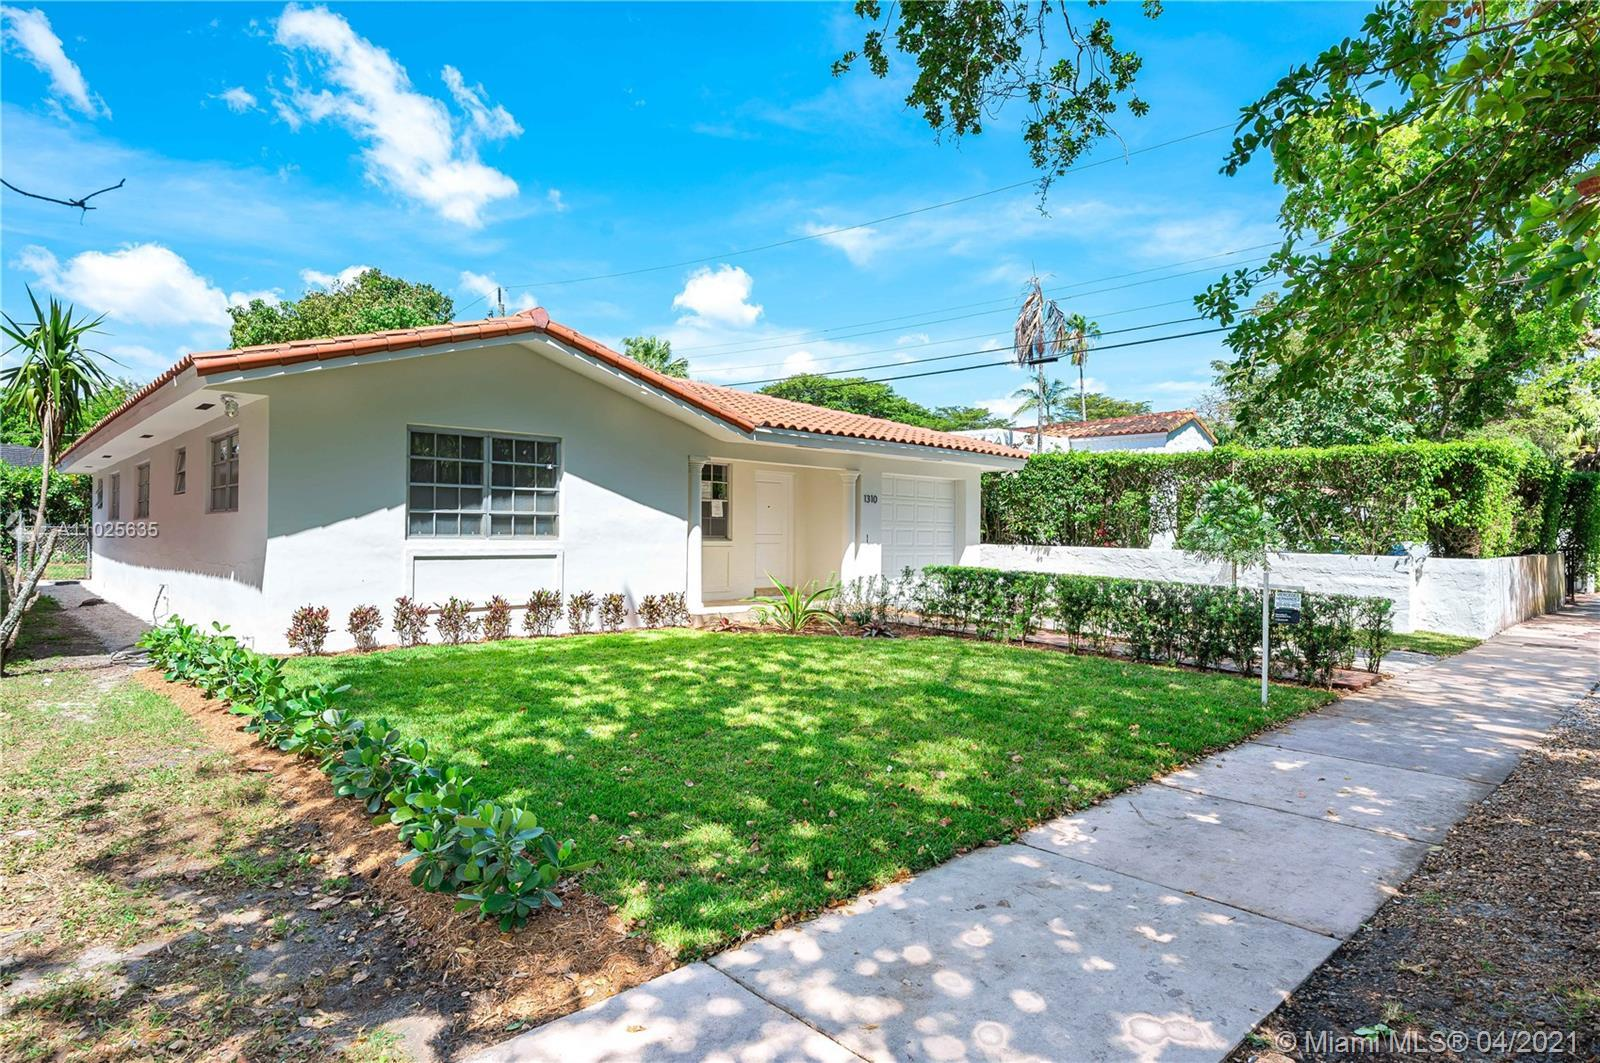 Beautiful home on a great quiet street...room to expand or build pool.  Very large bedrooms with spa